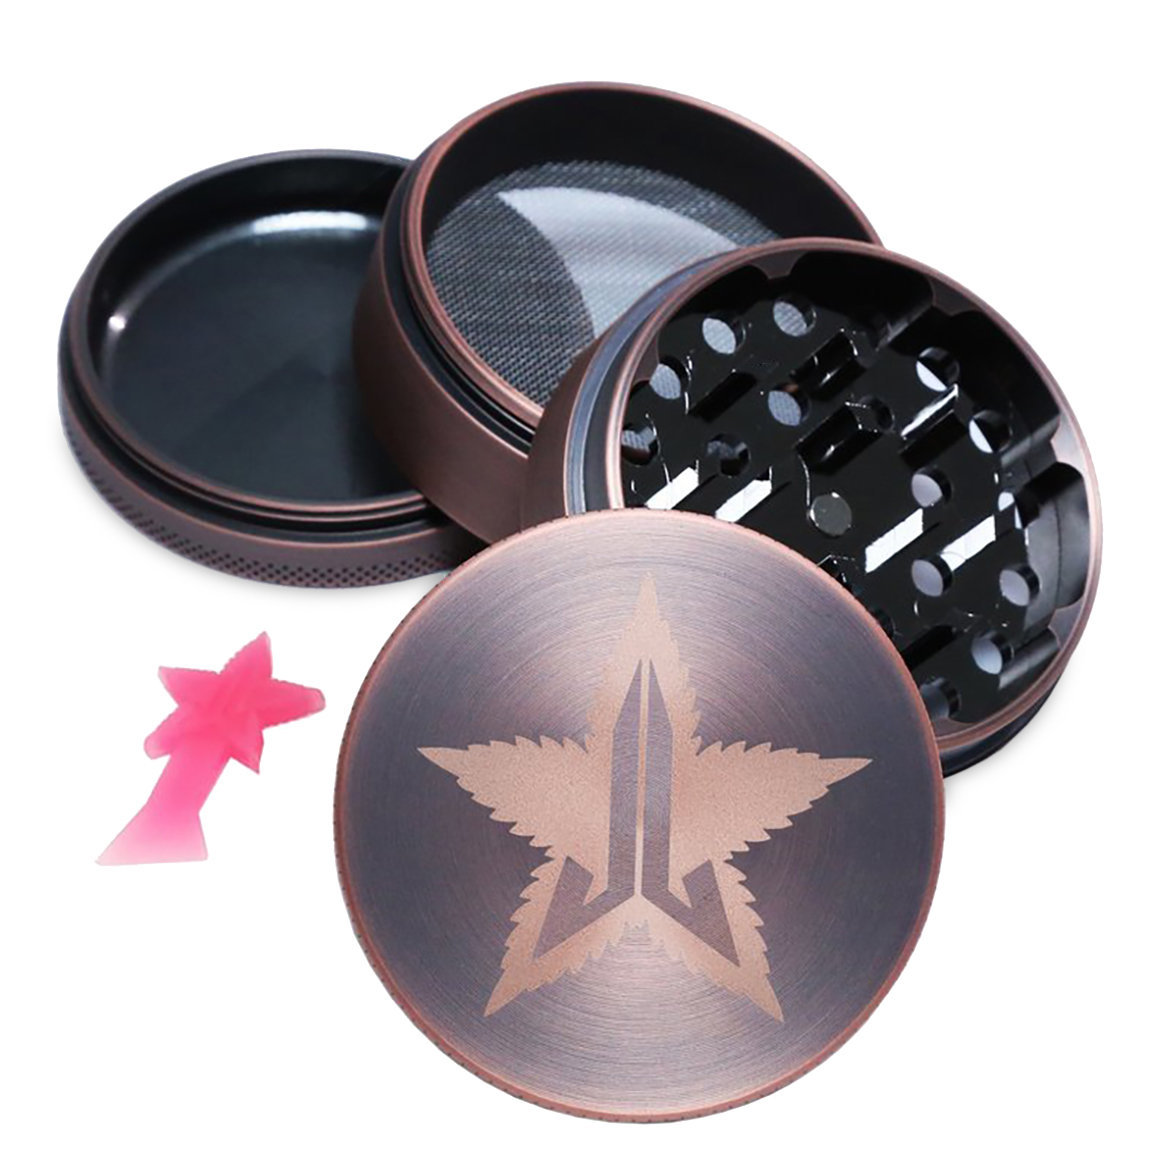 Jeffree Star Cosmetics 63mm Grinder Bronze alternative view 1 - product swatch.